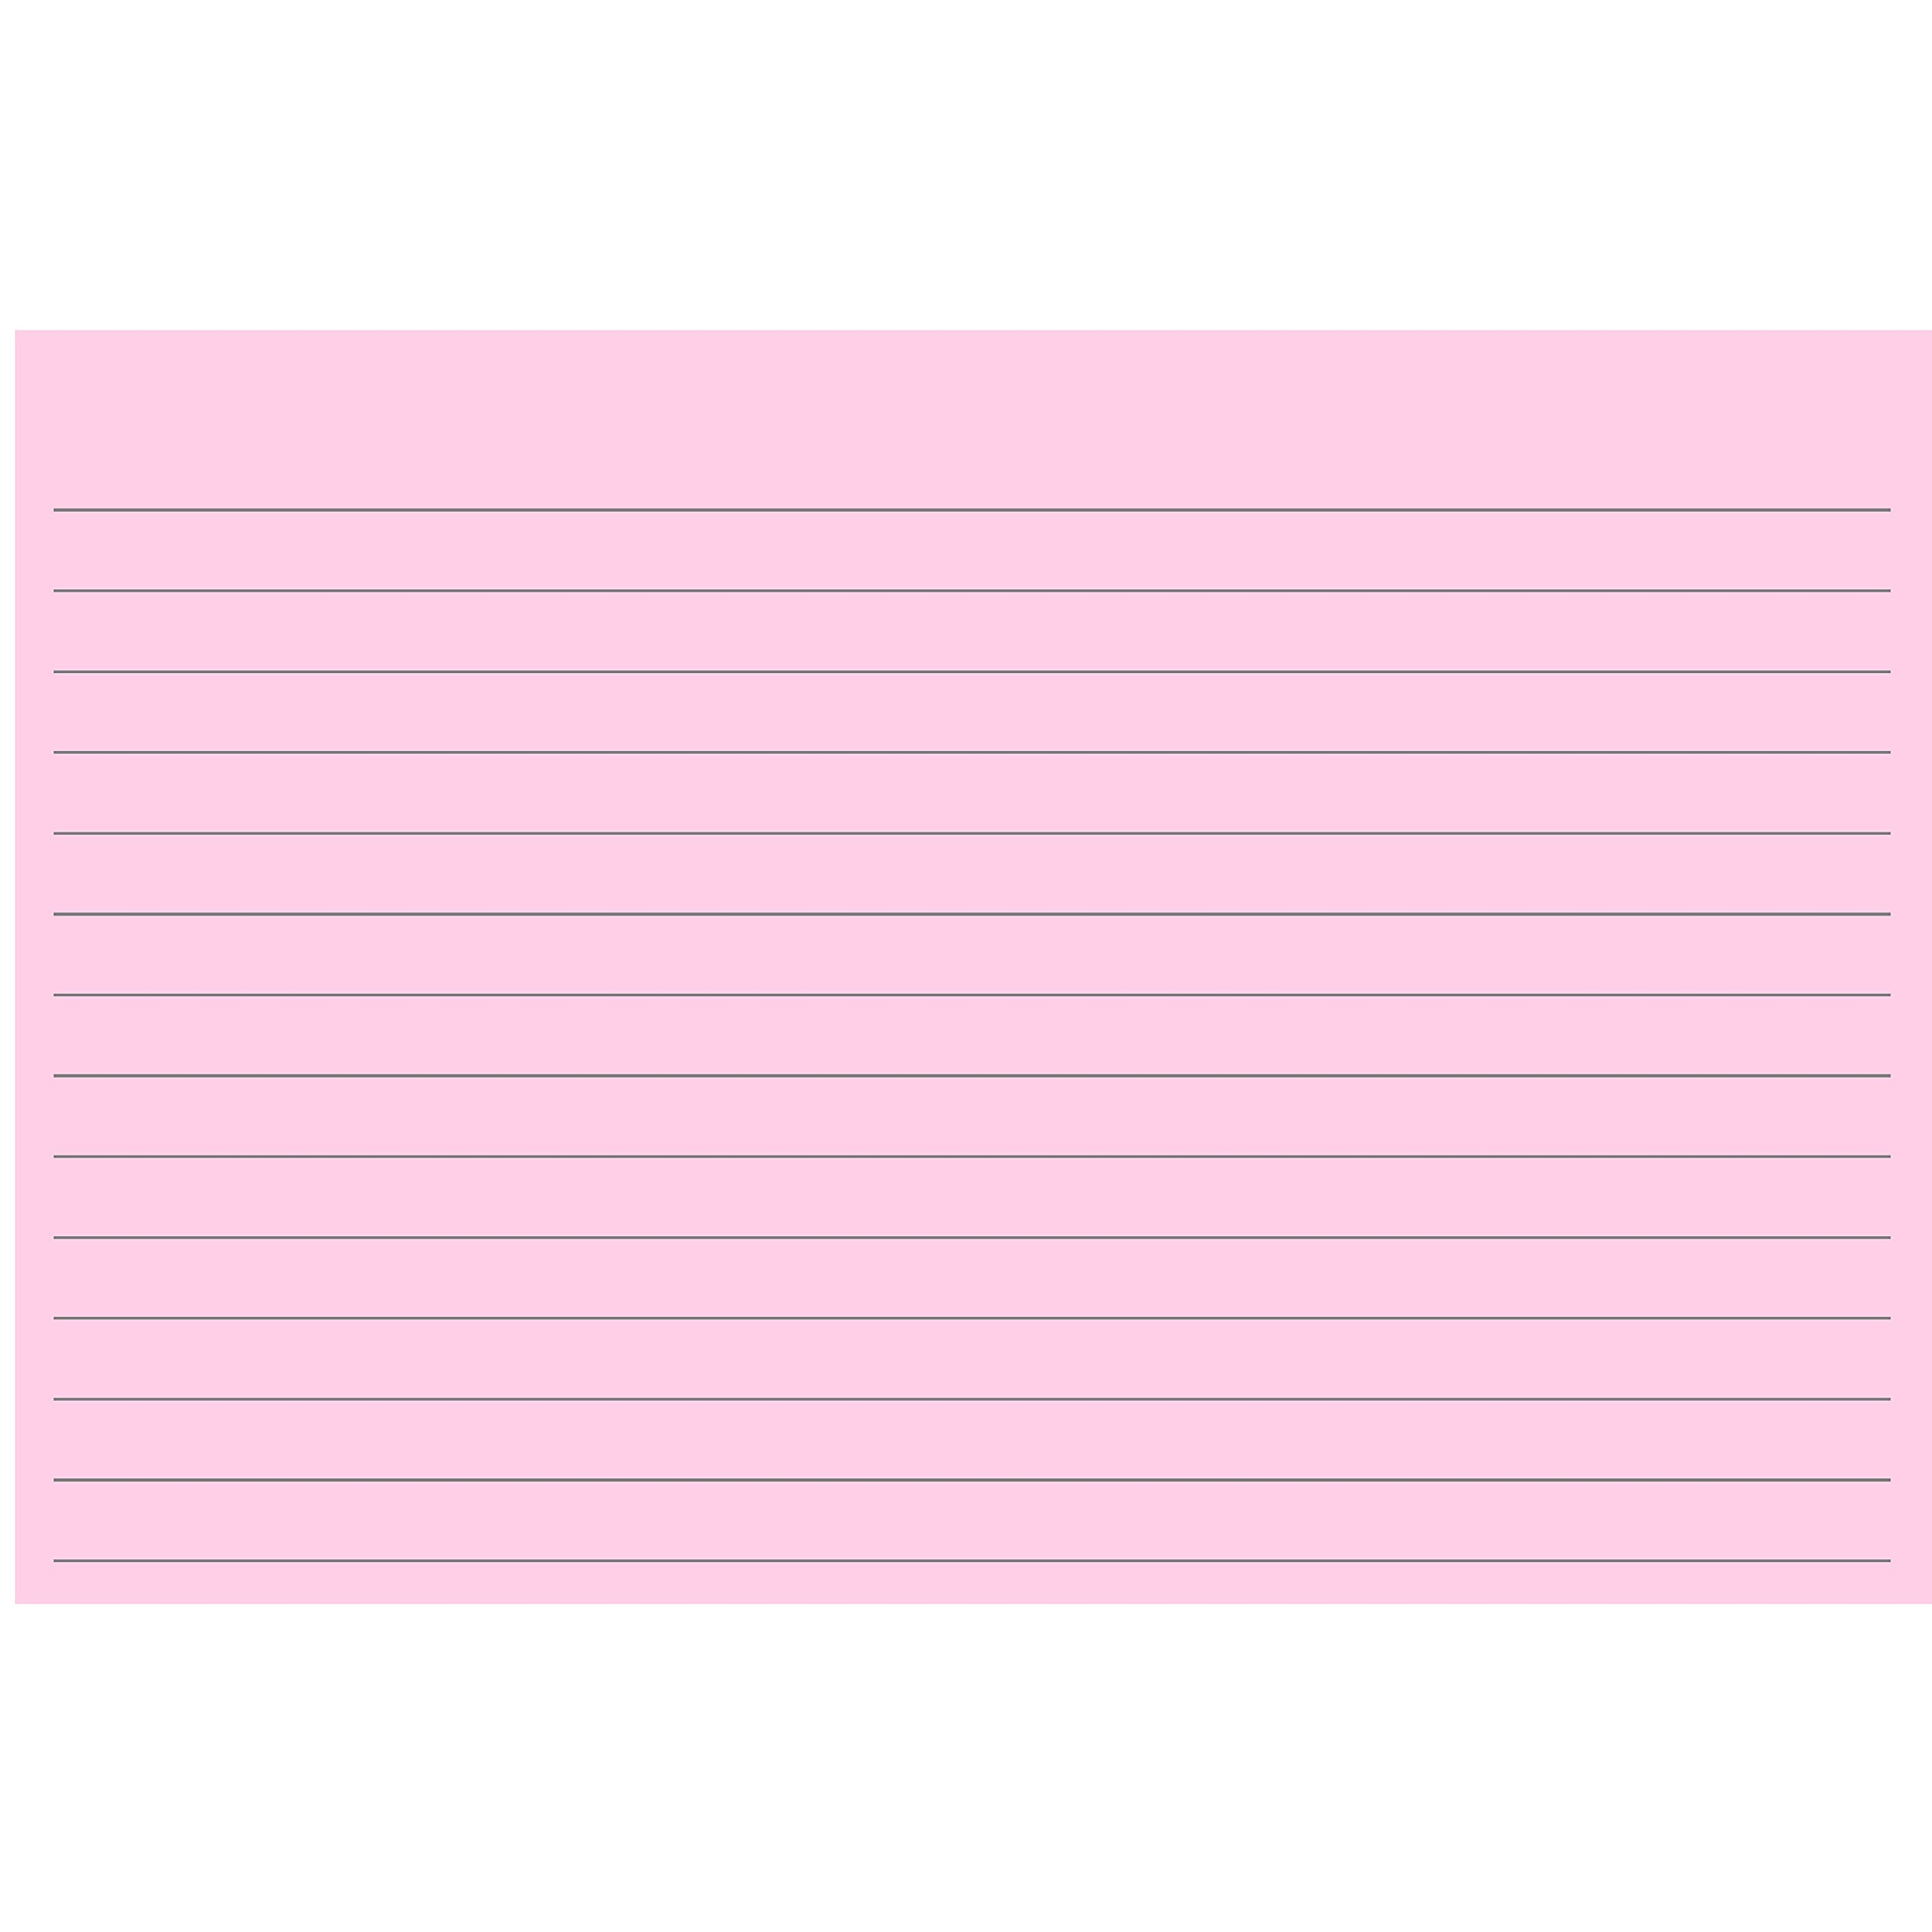 Colonial Cards: 100 Color Cardstock 4'' x 6'' Index Cards, Pink, Lined Landscape Format